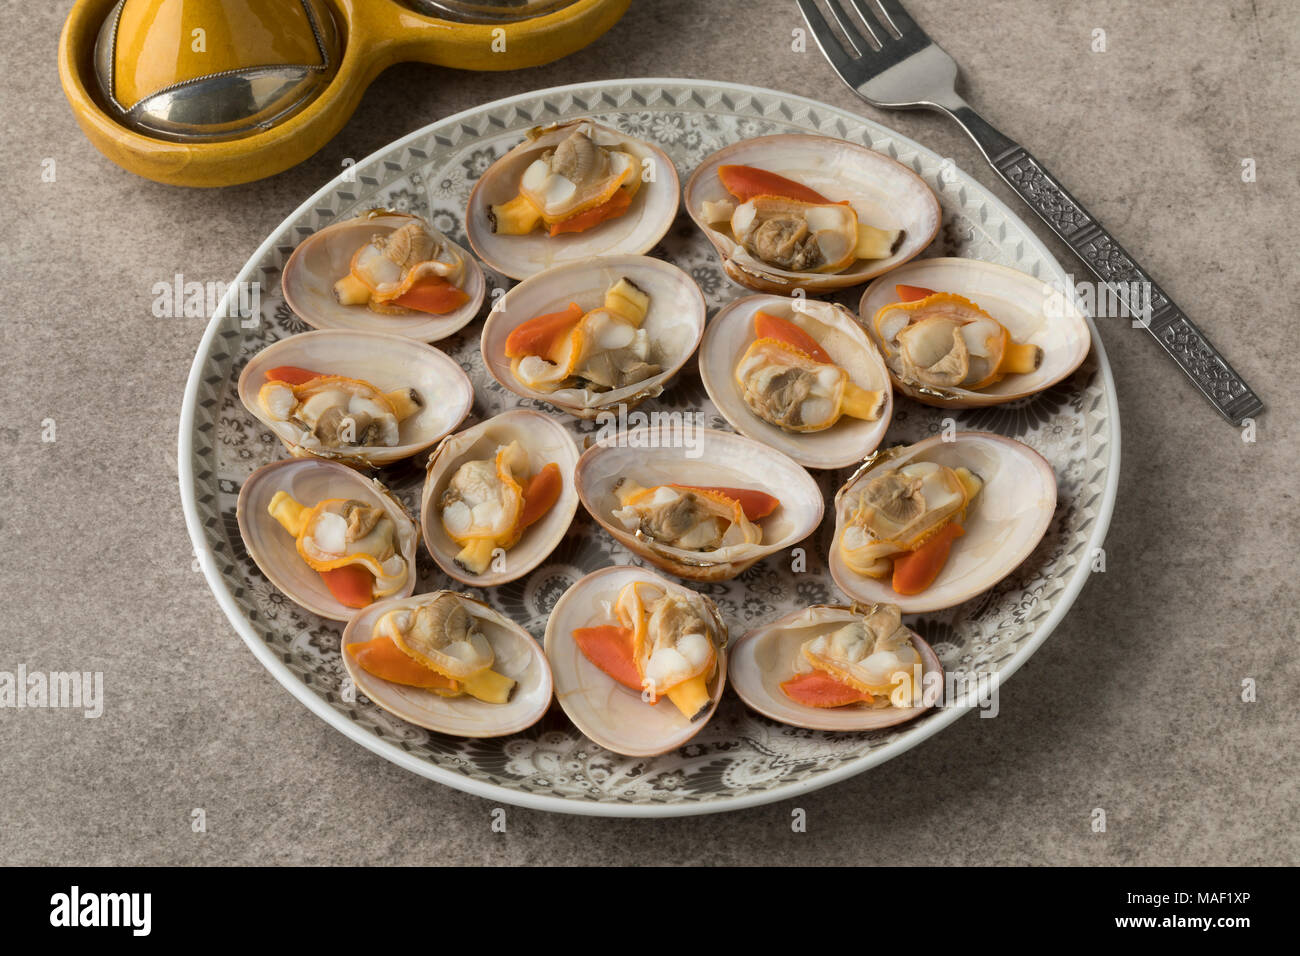 Moroccan dish with open cooked smooth clams for a meal - Stock Image